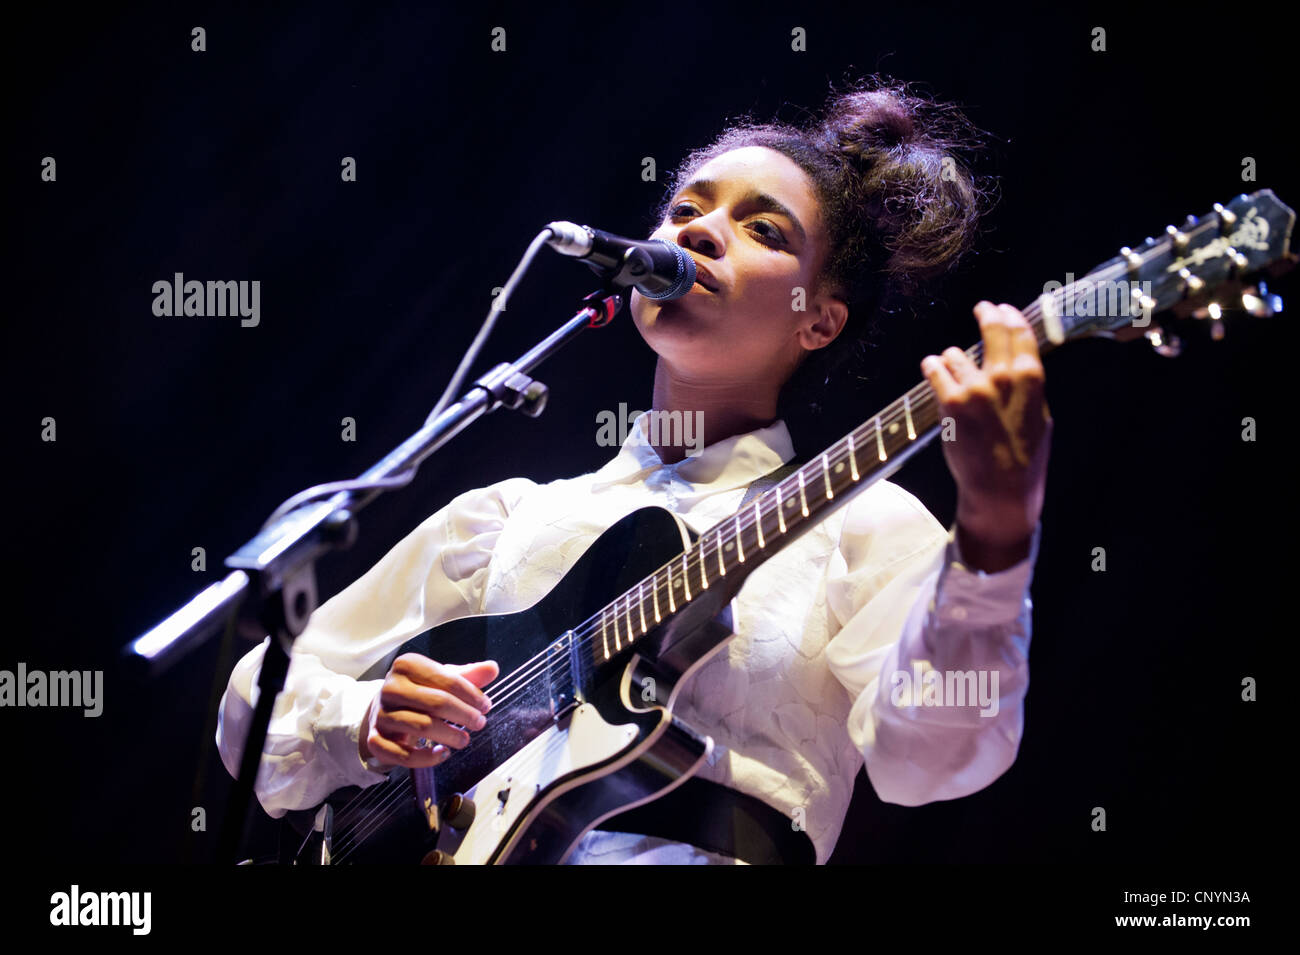 Singer-songwriter Lianne La Havas at Wolverhampton 17th April 2012 - Stock Image